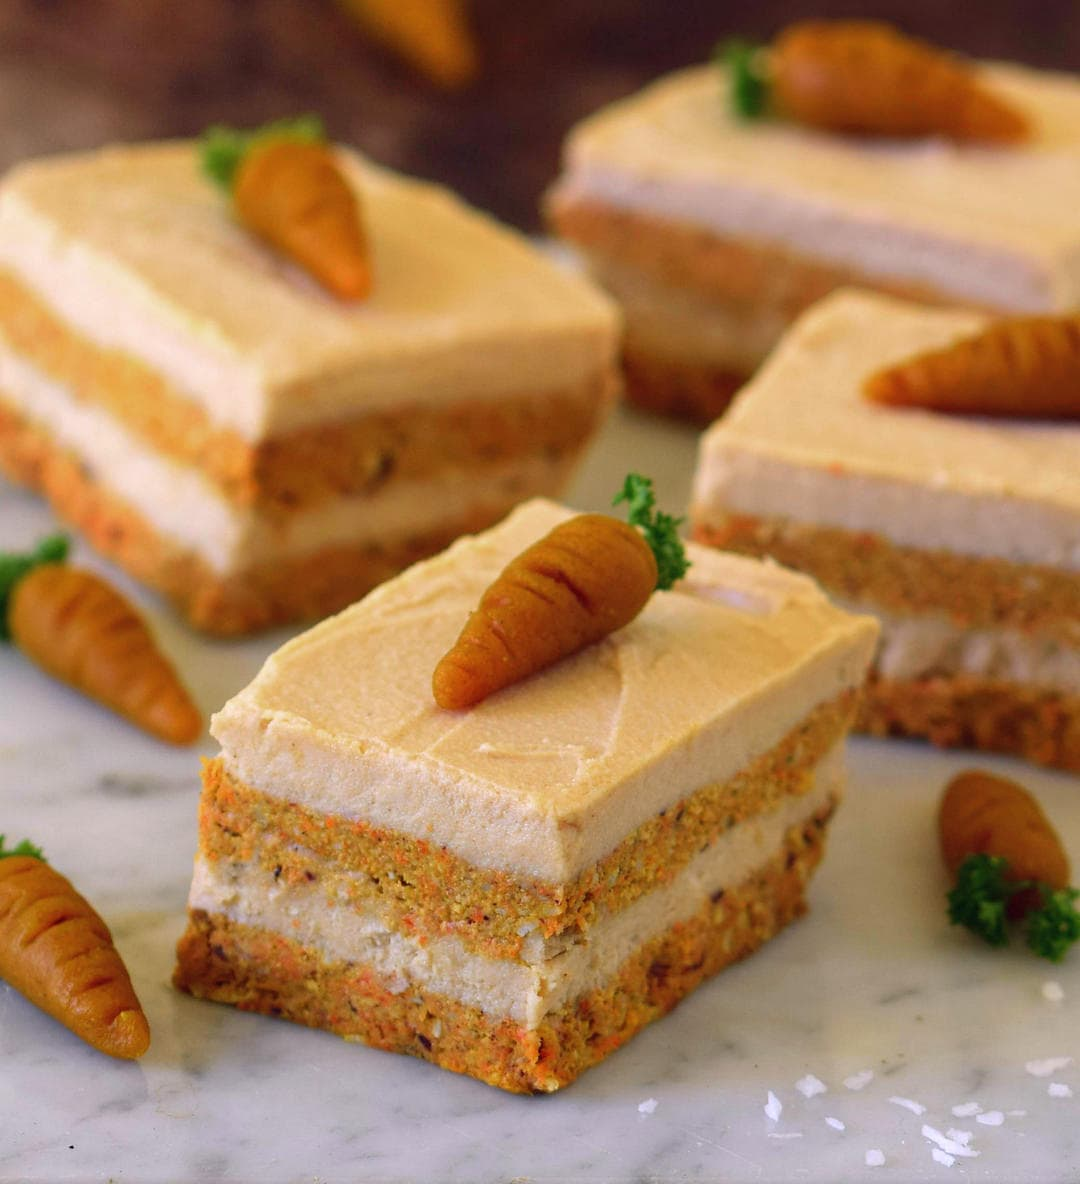 Yummy No Bake Carrot Cake